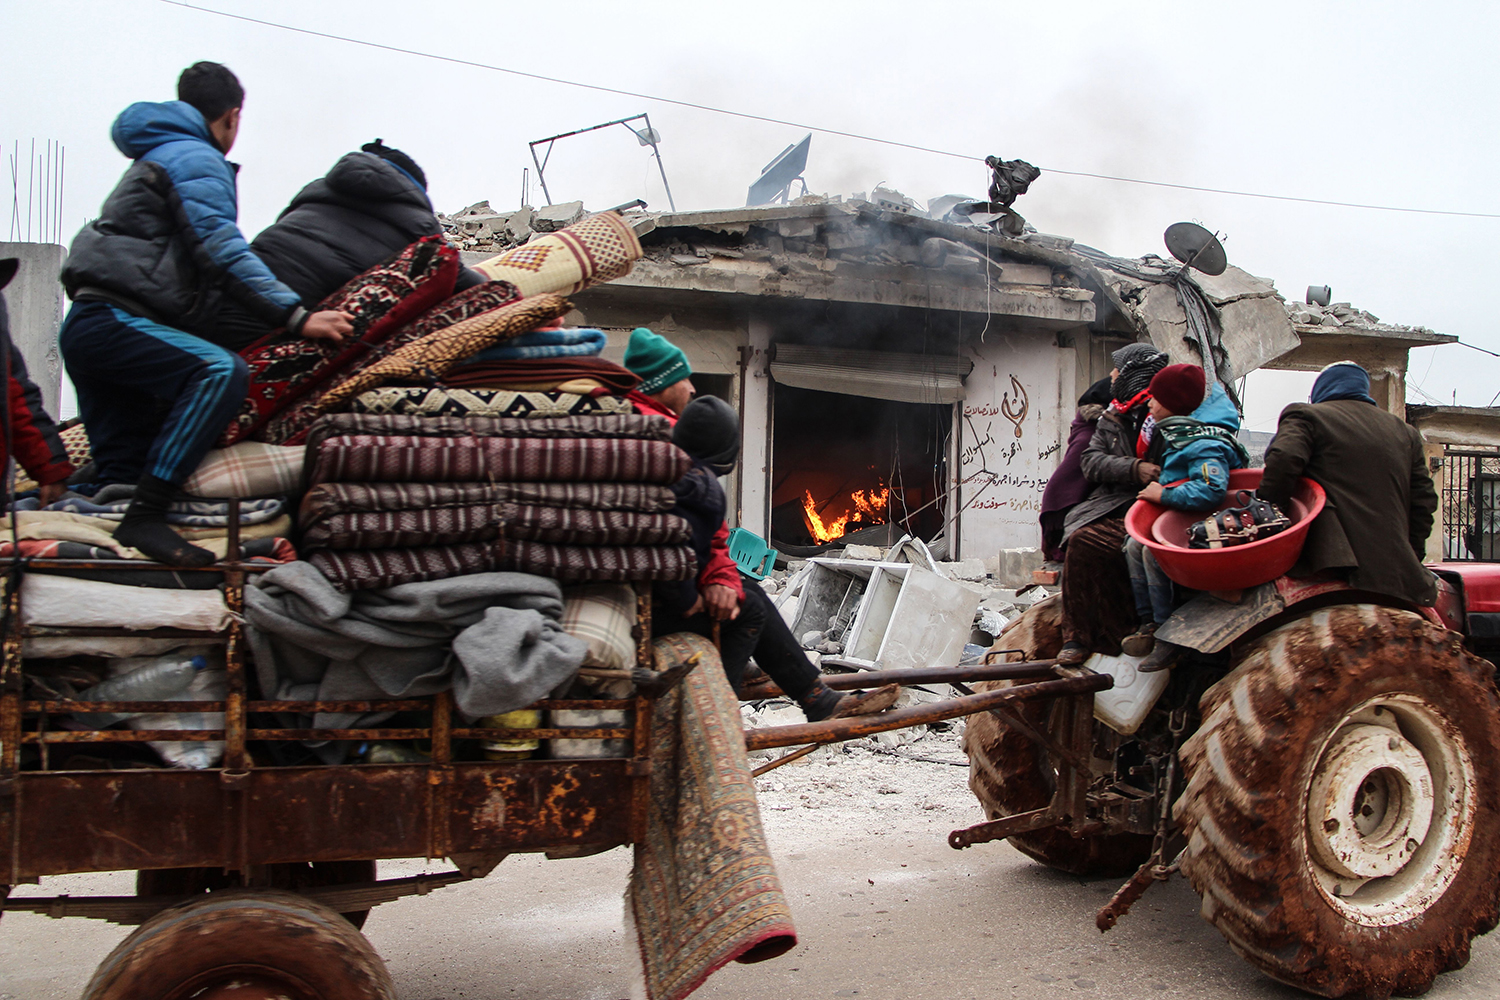 Members of a Syrian family fleeing attacks by pro-regime forces drive past a burning shop in the town of Abin Semaan west of  Aleppo on Feb. 12. IBRAHIM YASOUF/AFP via Getty Images